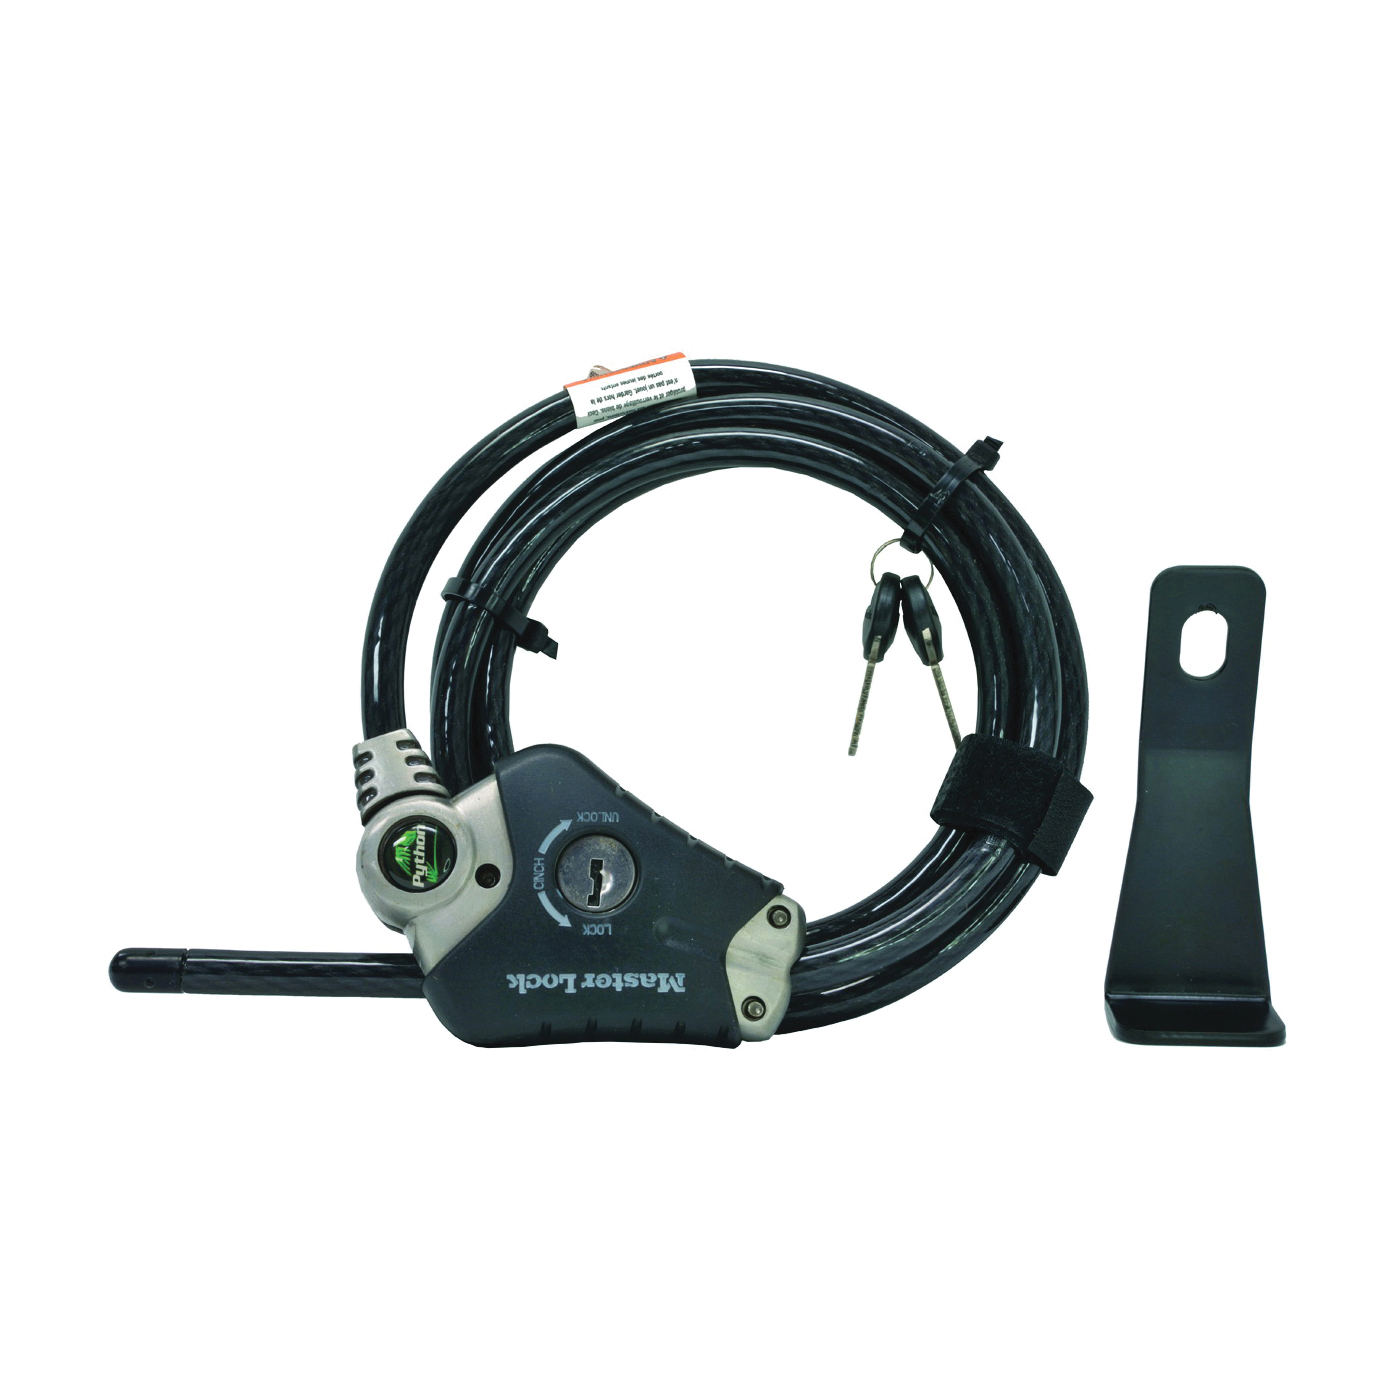 Picture of ORCA ORCPYC Master Lock Cable, 6 ft L Cable, Steel Cable